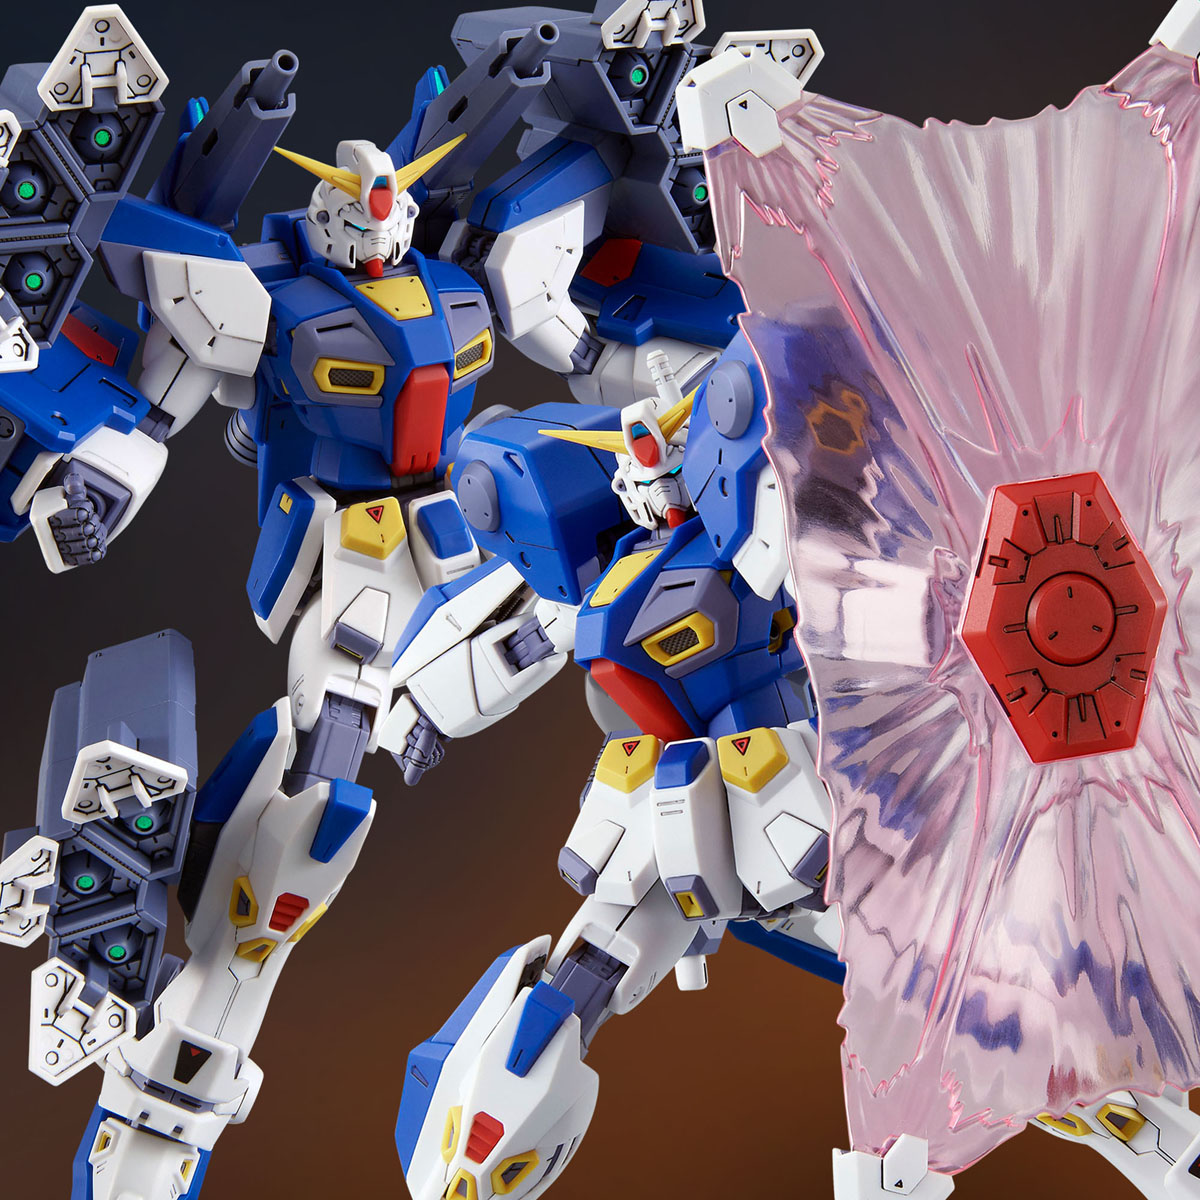 MG 1/100 MISSION PACK B-TYPE & K-TYPE for GUNDAM F90 [Aug 2020 Delivery]